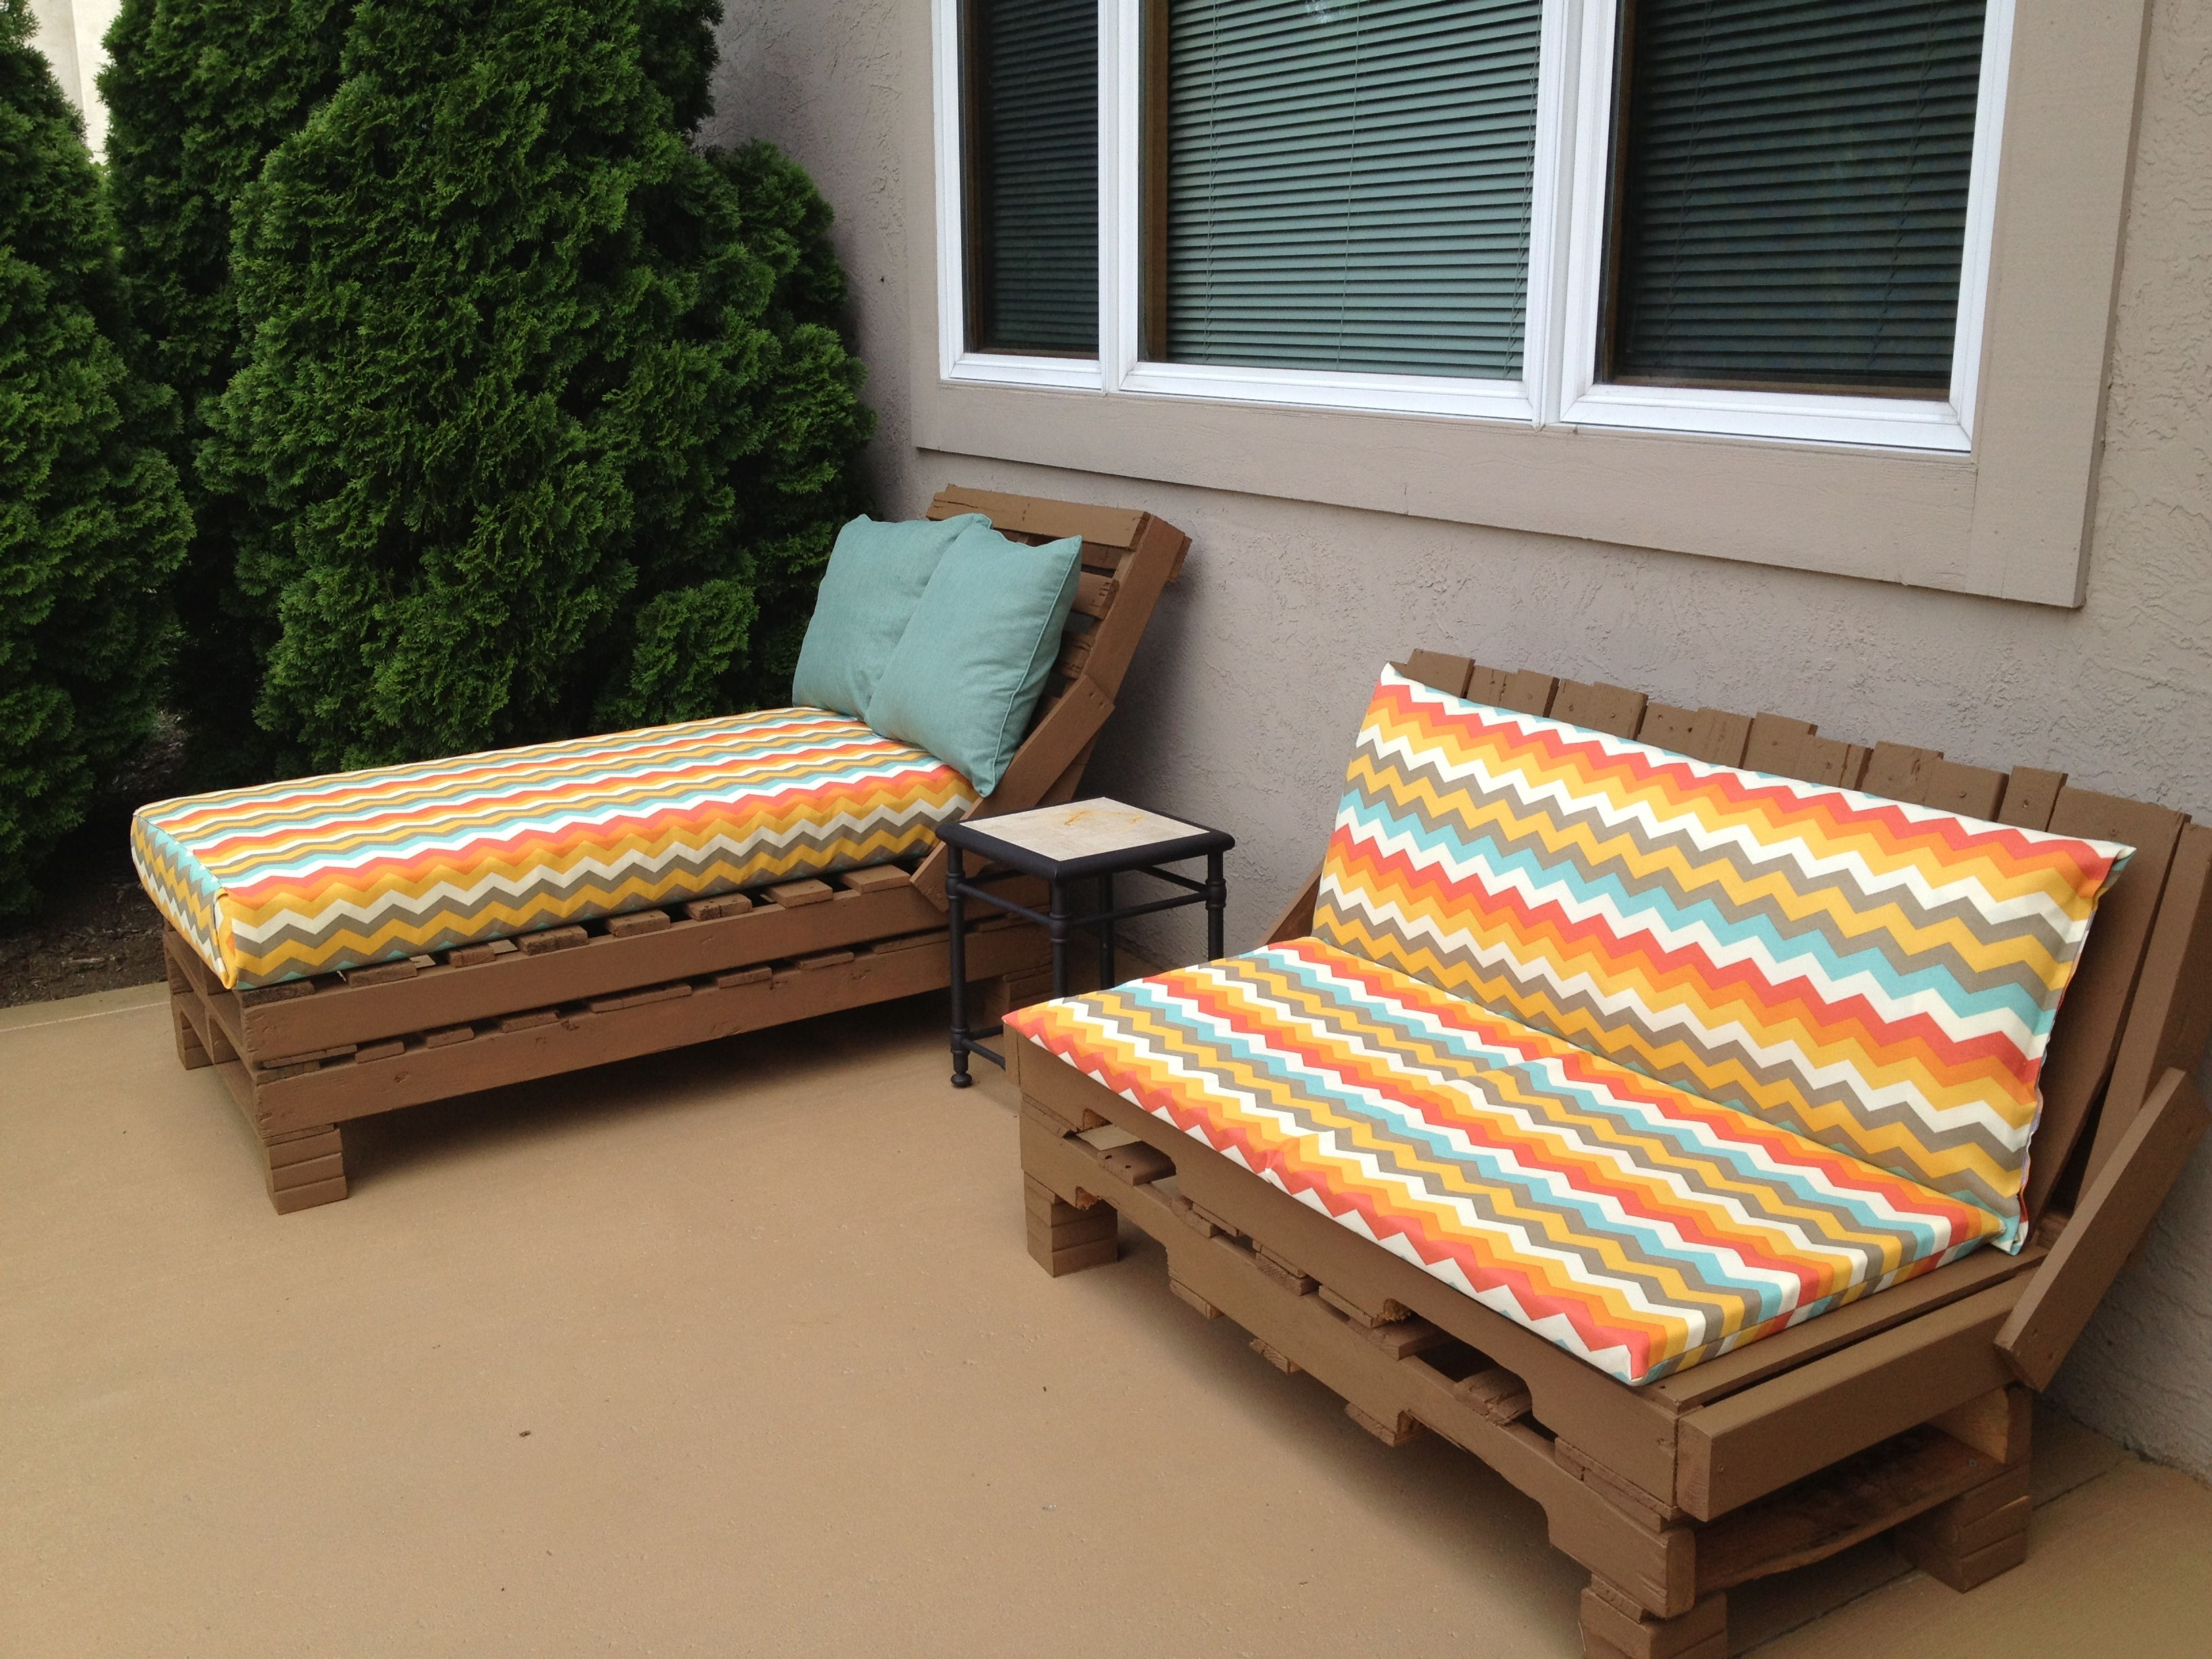 Pallet Patio Furniture So Easy Stack Pallets Nail Together Paint Cover Crib Mattress In